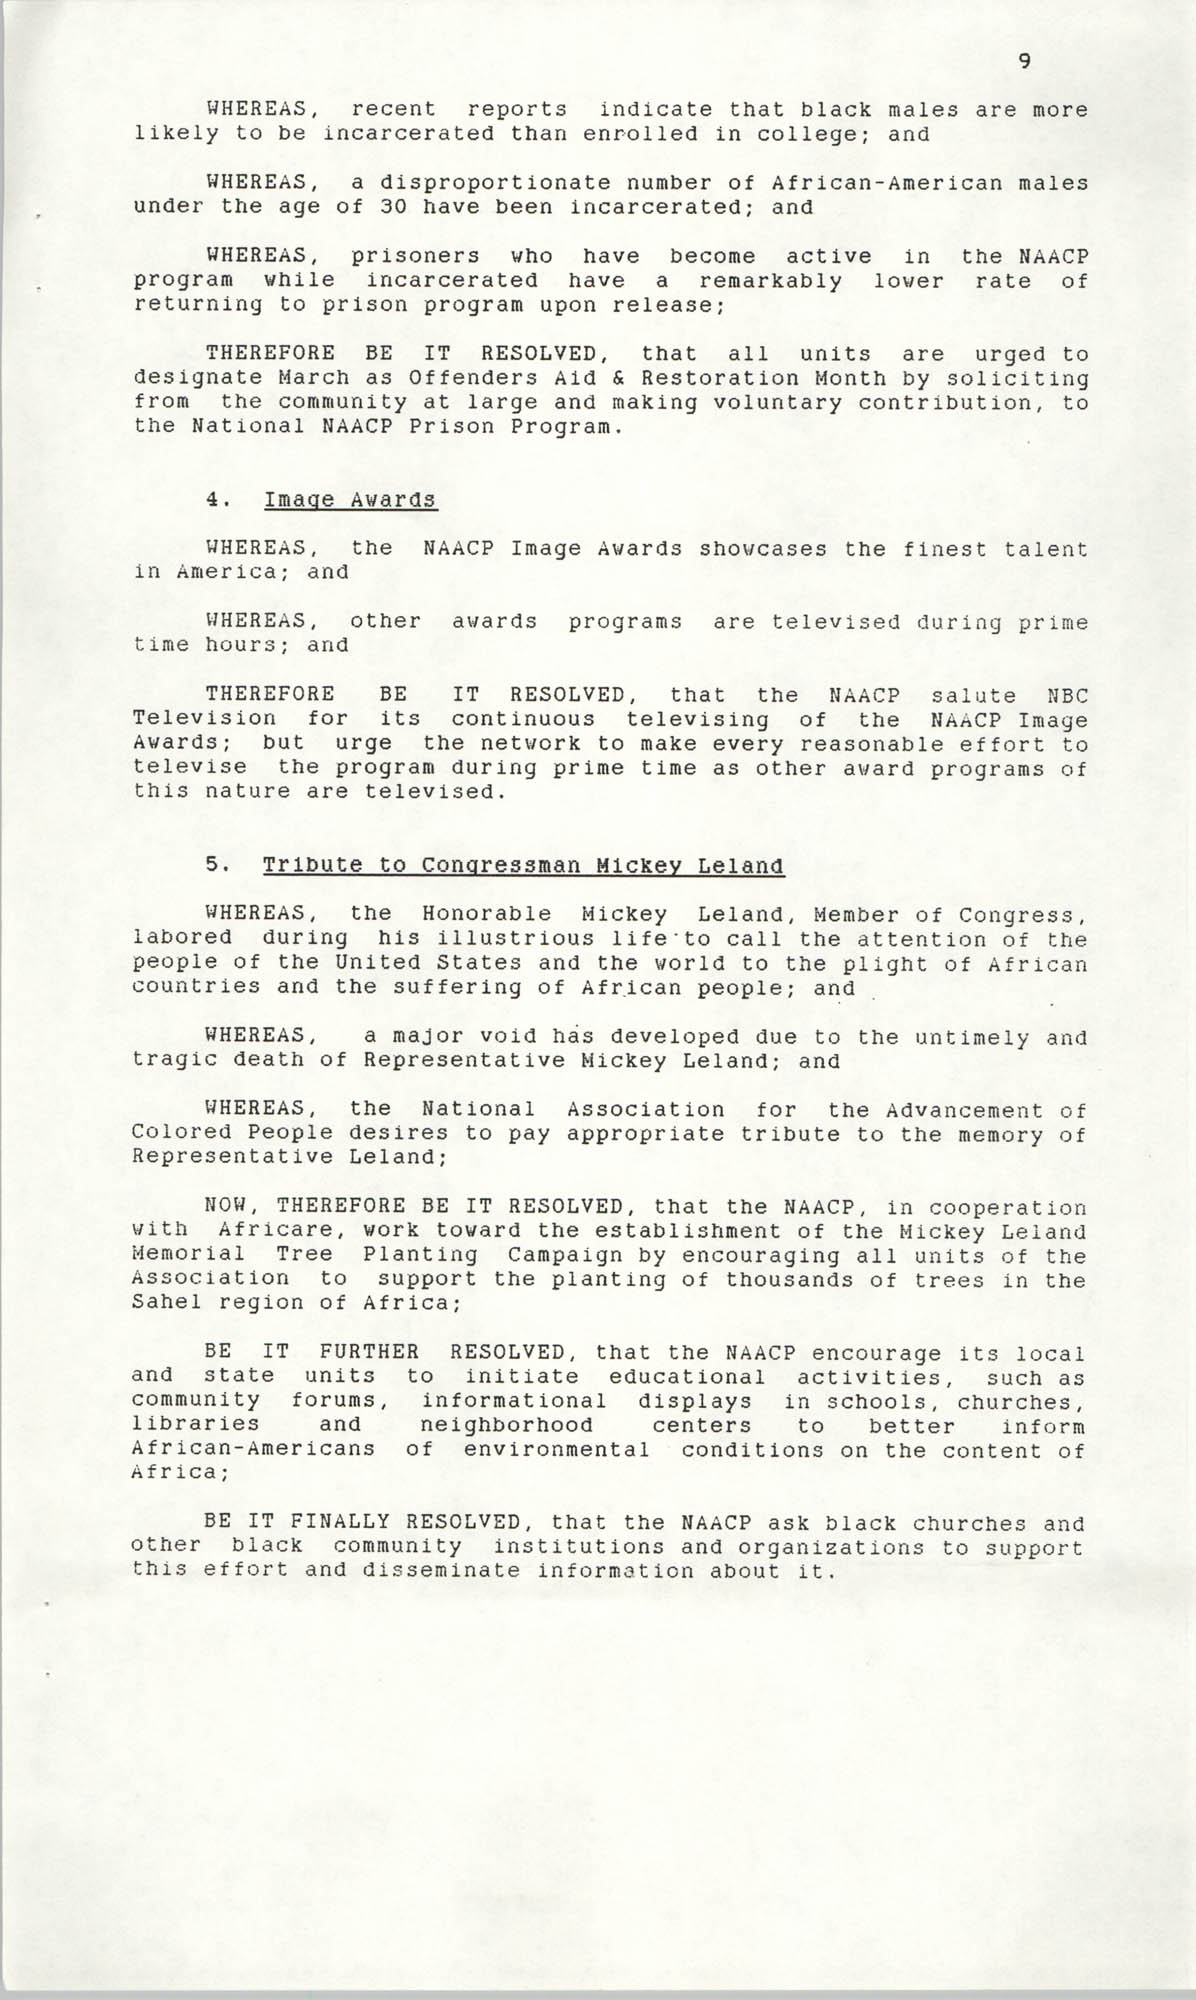 Resolutions Submitted Under Article X, Section 2 of the Constitution of the NAACP, 1990, Page 9